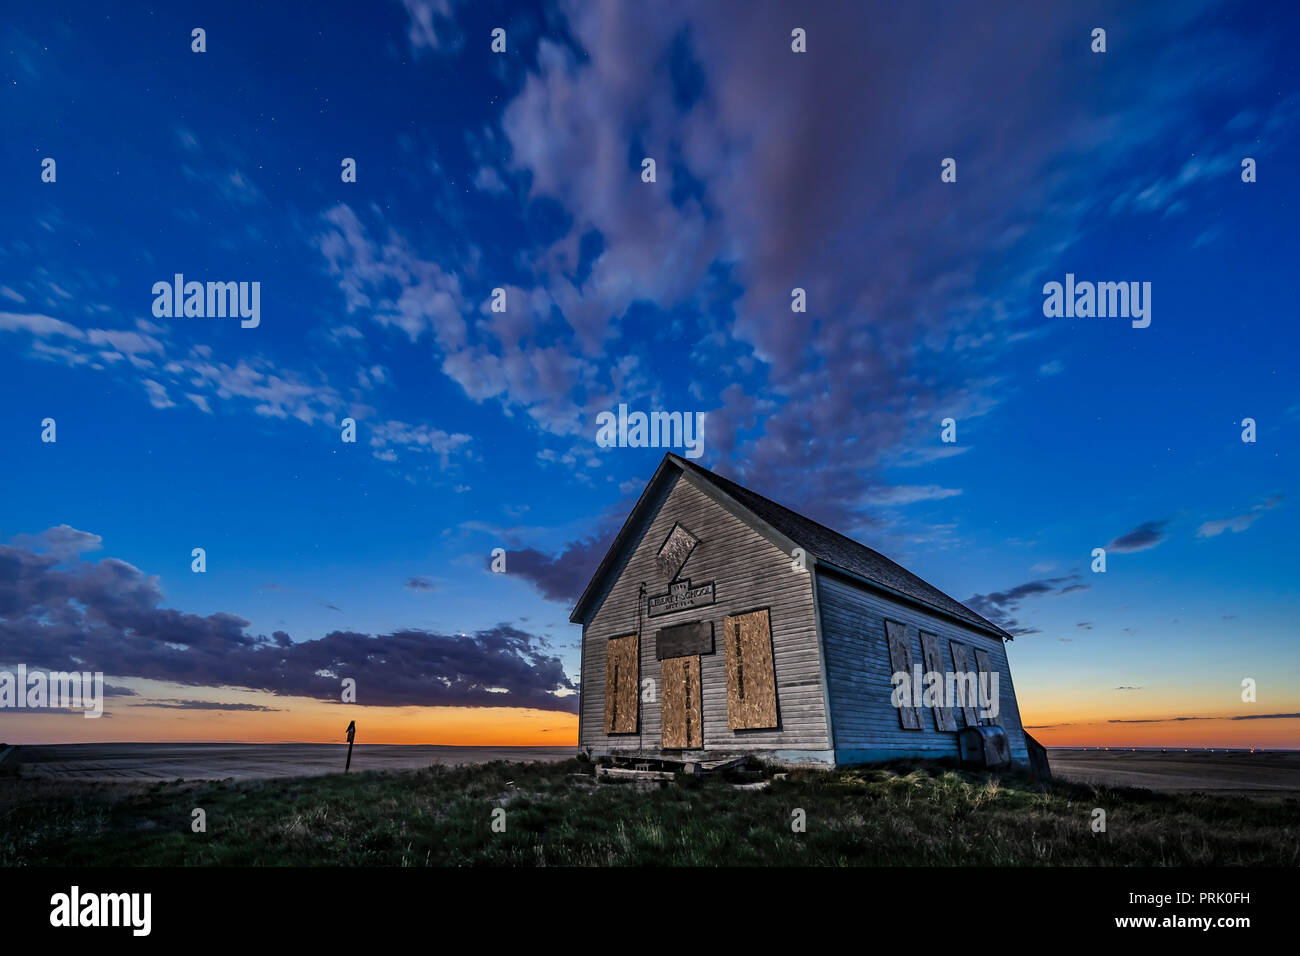 The 1910 Liberty Schoolhouse, a classic pioneer one-room schoolhouse on the Alberta prairie, at sunset as the stars are appearing, and with Venus in t Stock Photo